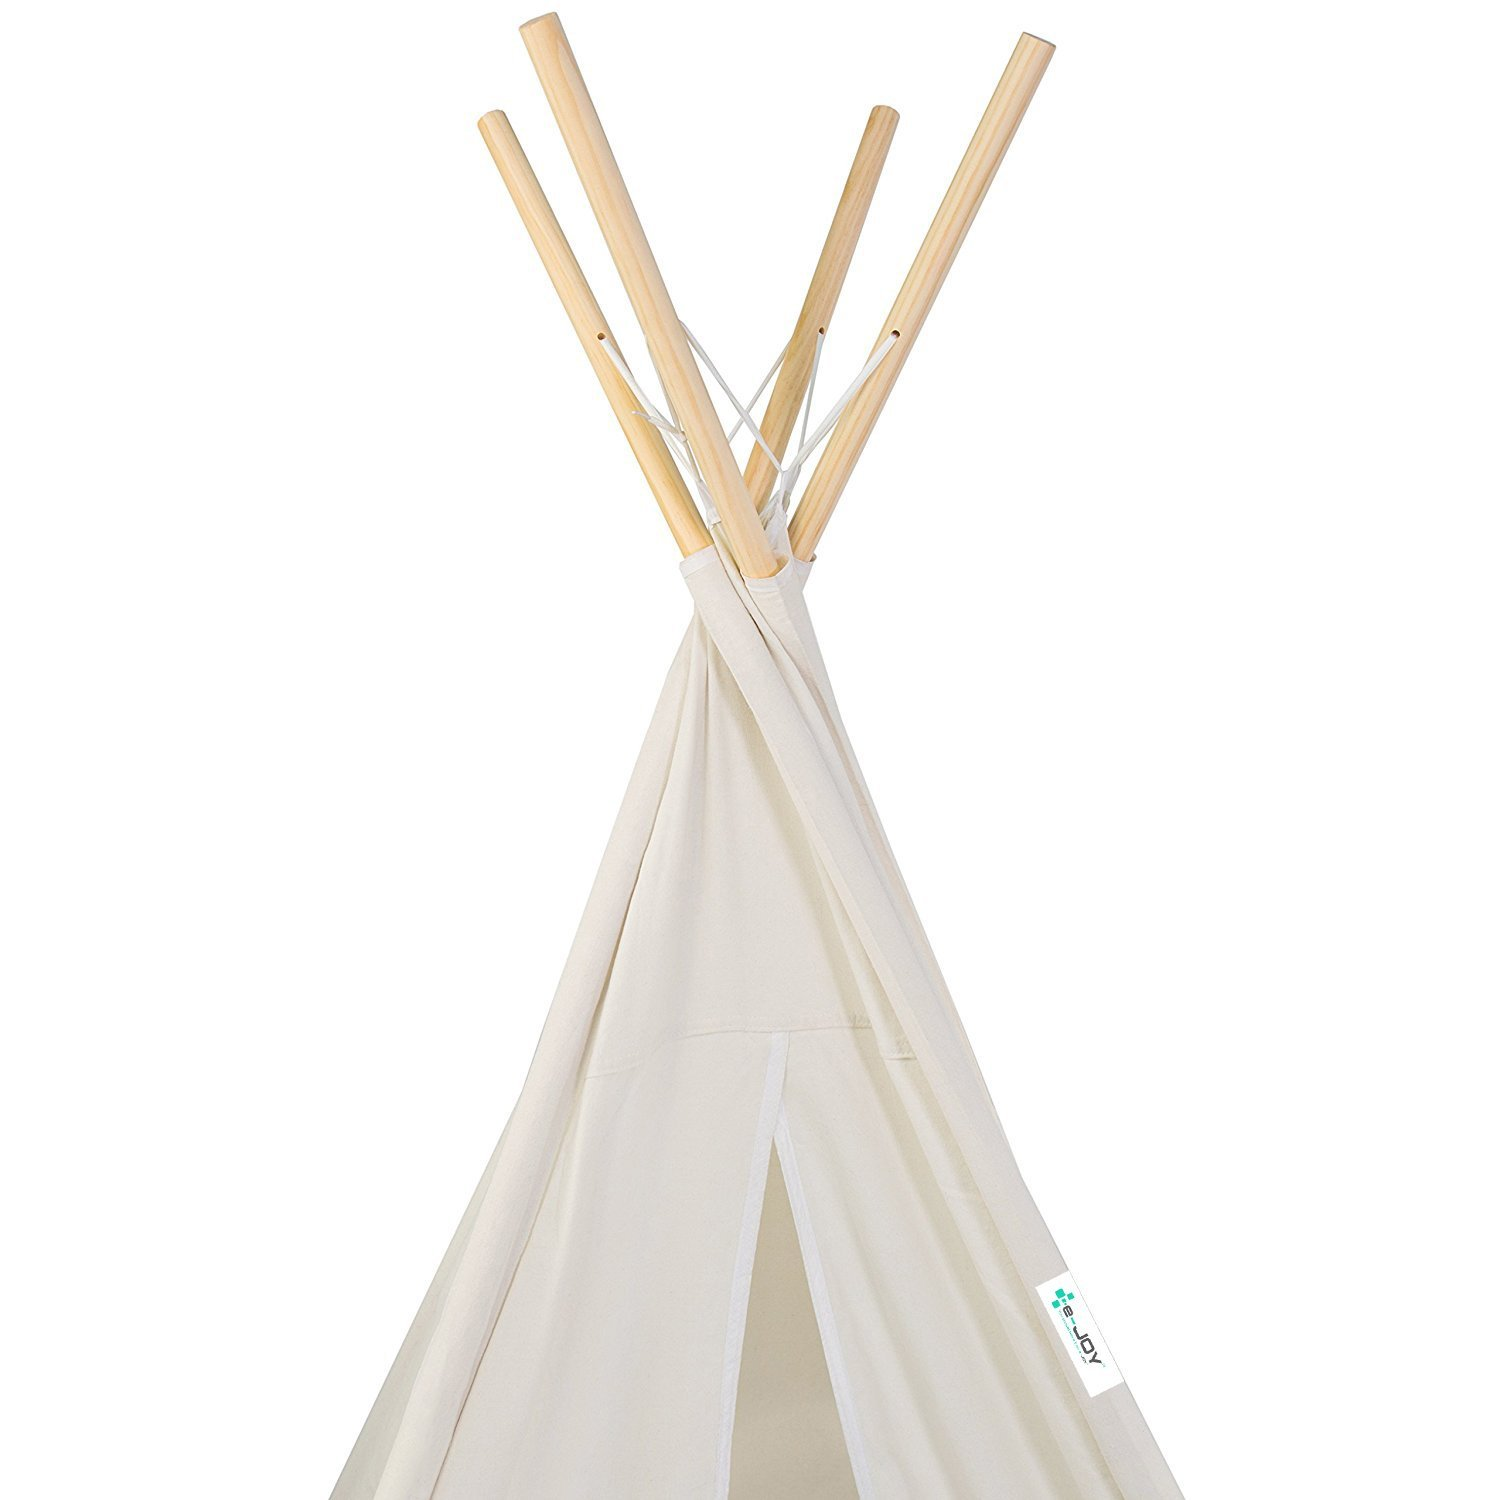 e-Joy 6' Indoor Indian Playhouse Toy Teepee Play Tent for Kids Toddlers